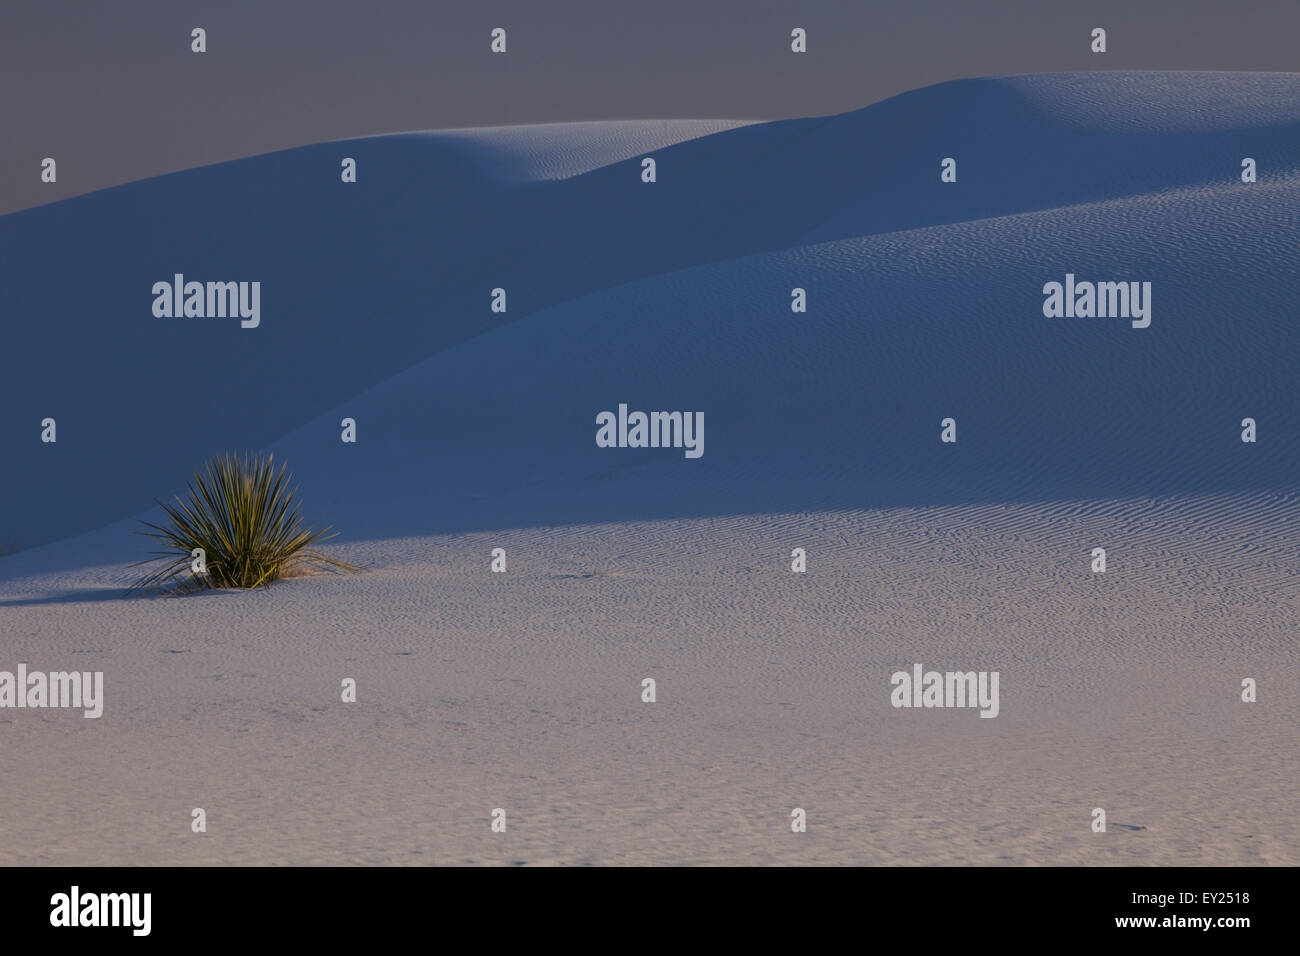 Blue shadows on dunes, White Sands, New Mexico, USA - Stock Image